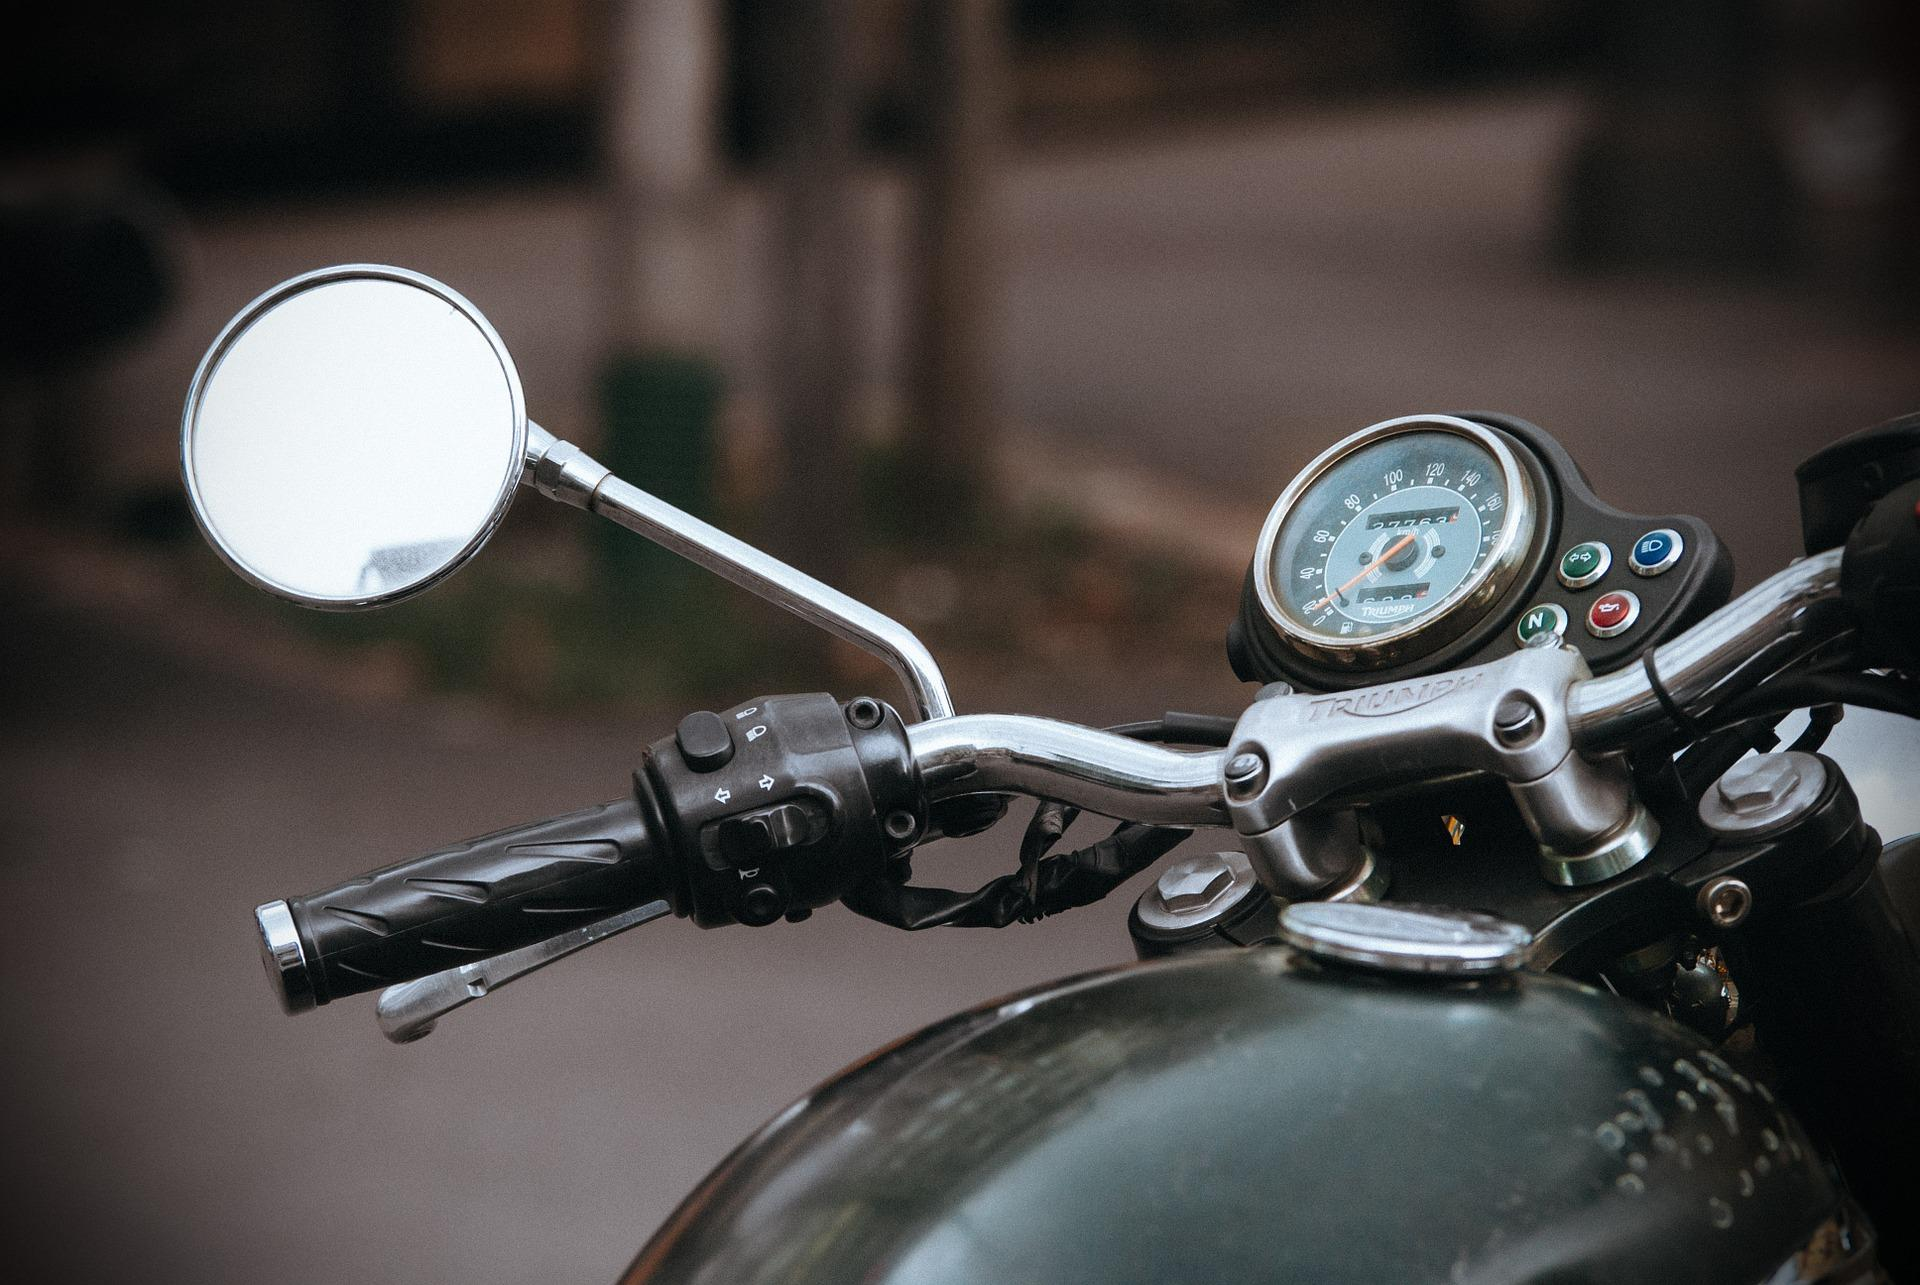 Motorcycle Accident Compensation Claims